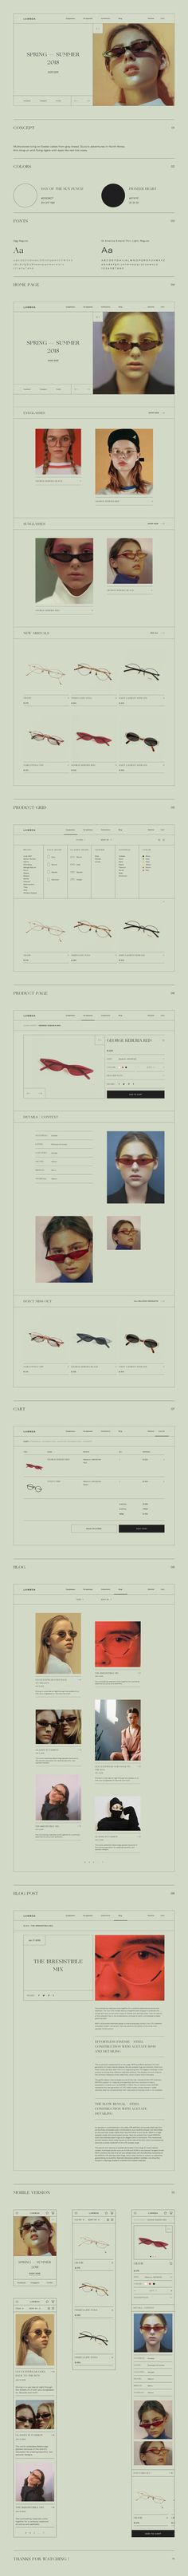 Lambda: Glasses Store (Concept) on Behance